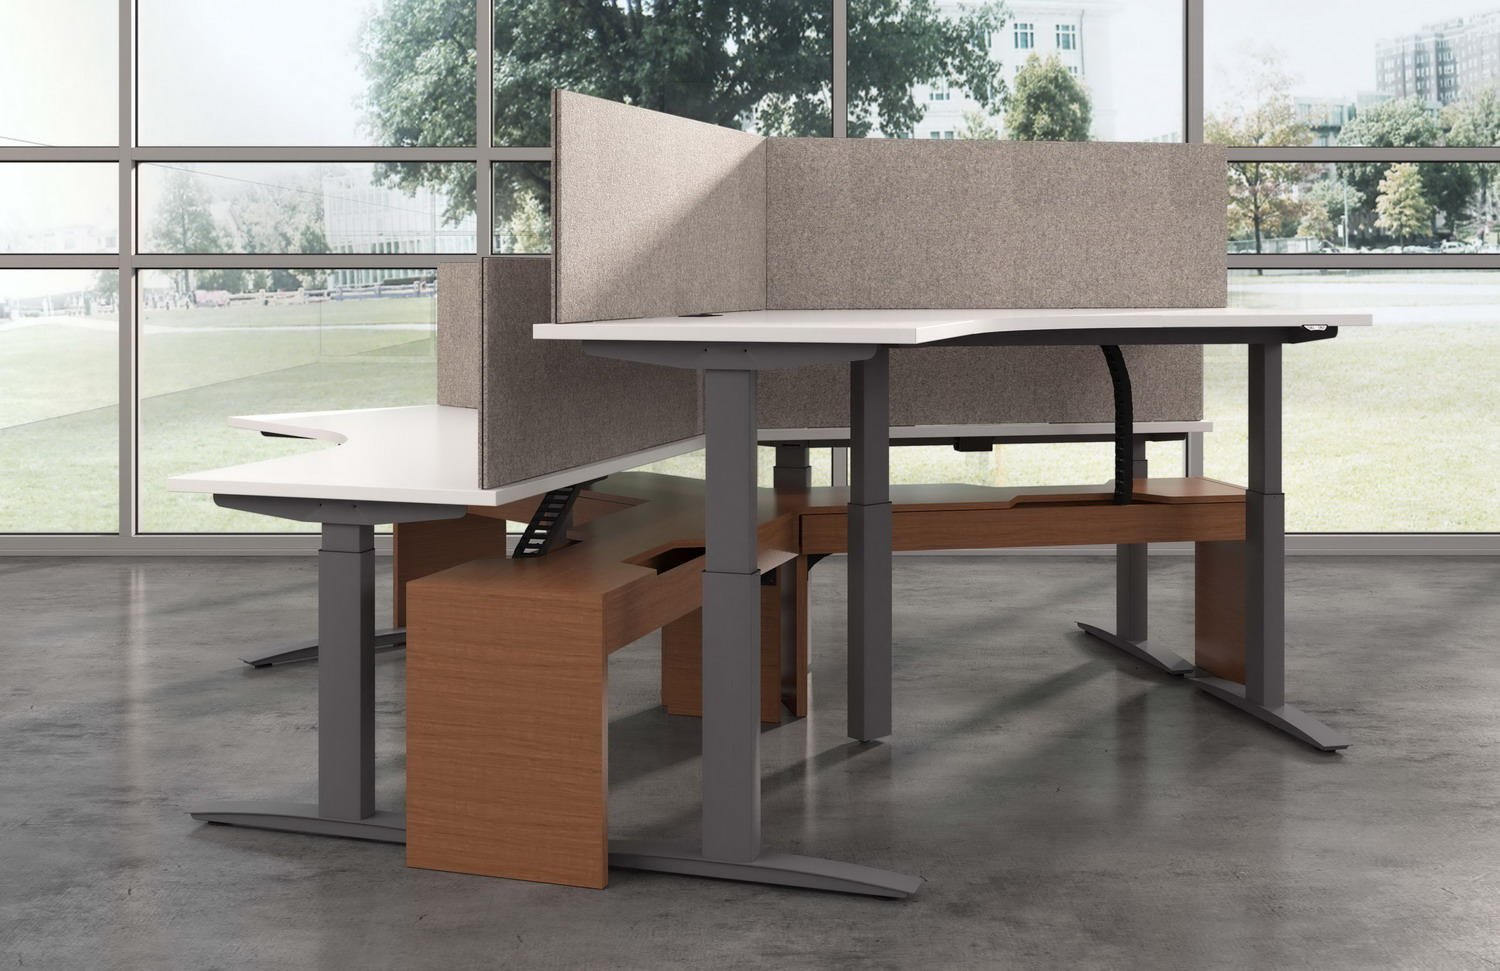 Contract Furniture Rendering of a 3 plex height adjustable desk.